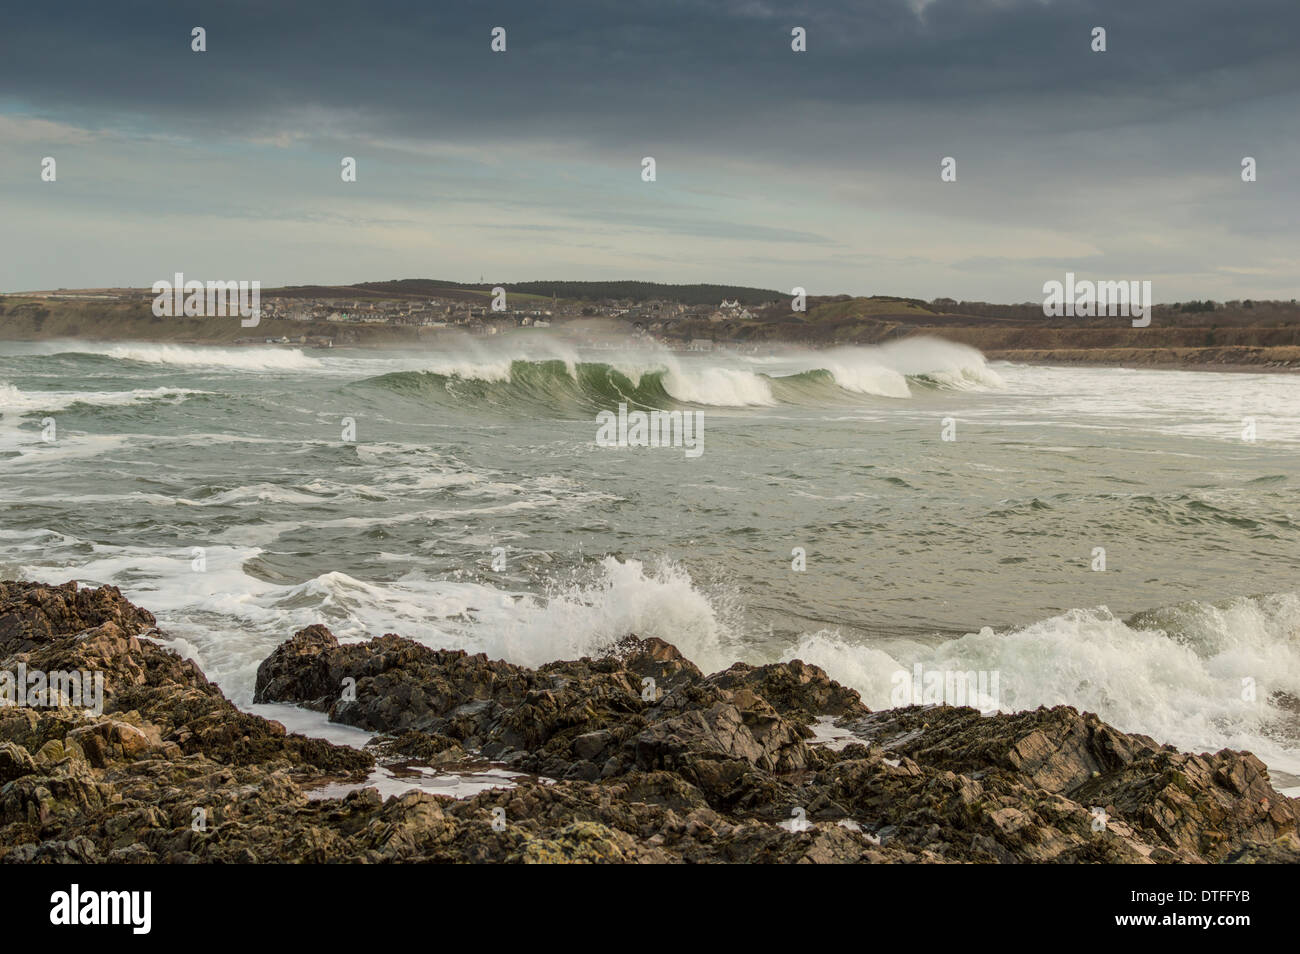 STORMY SEAS AND CRASHING WAVES WHITE HORSES IN CULLEN BAY MORAY SCOTLAND - Stock Image